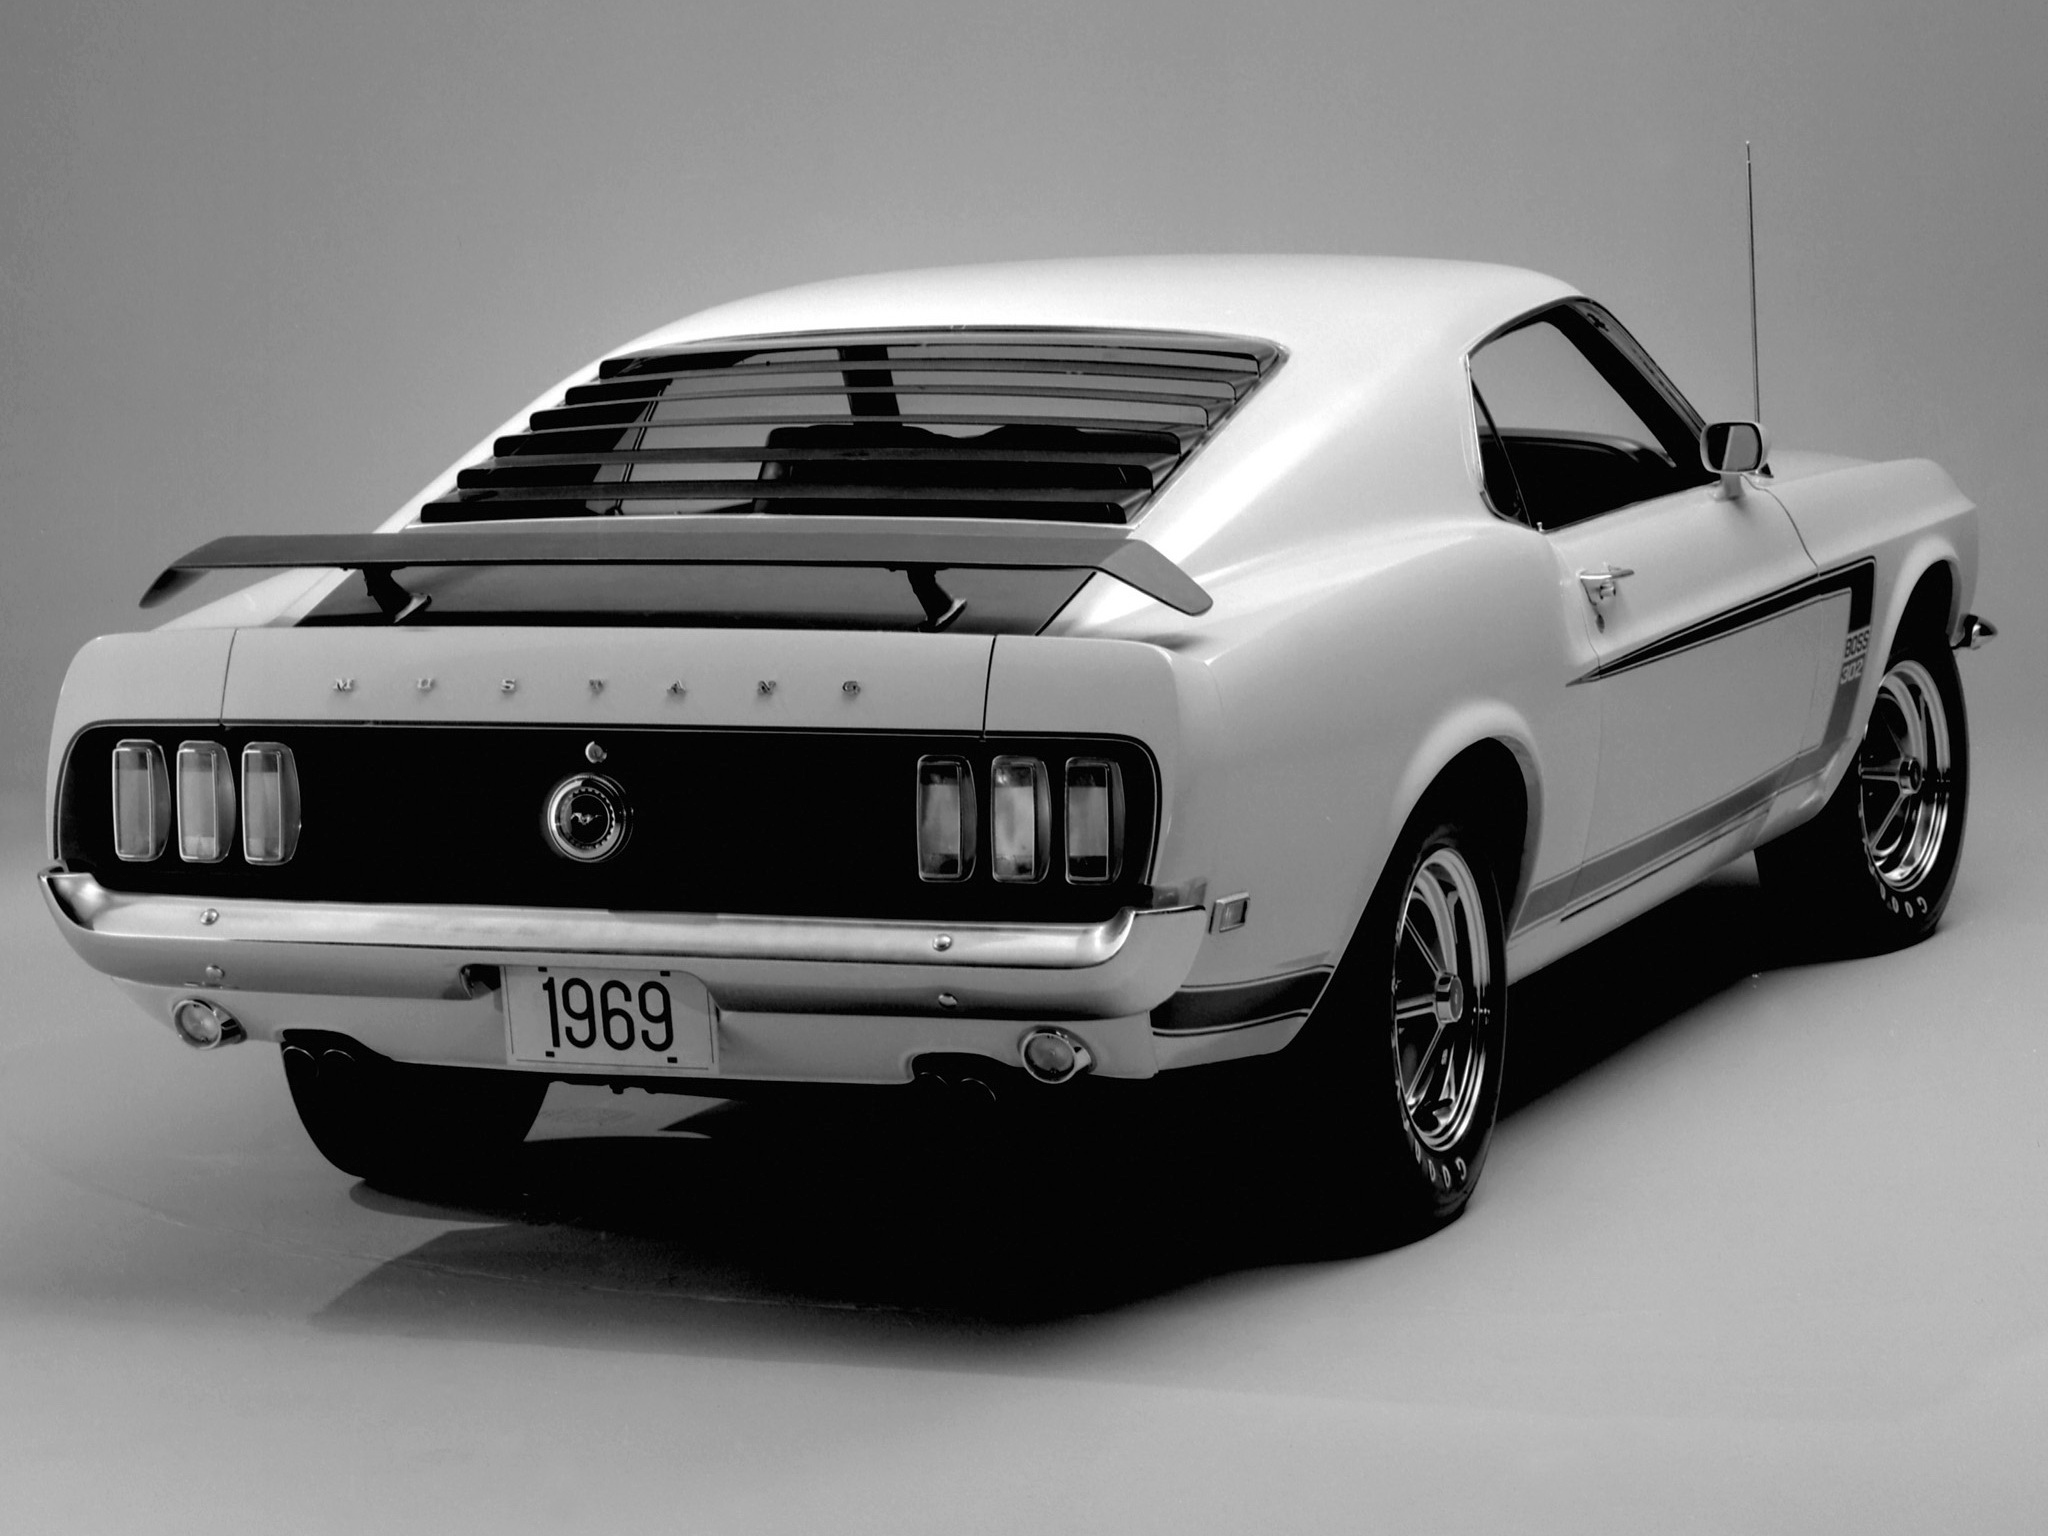 1969 ford mustang boss 302 muscle classic f wallpaper 2048x1536 162147 wallpaperup